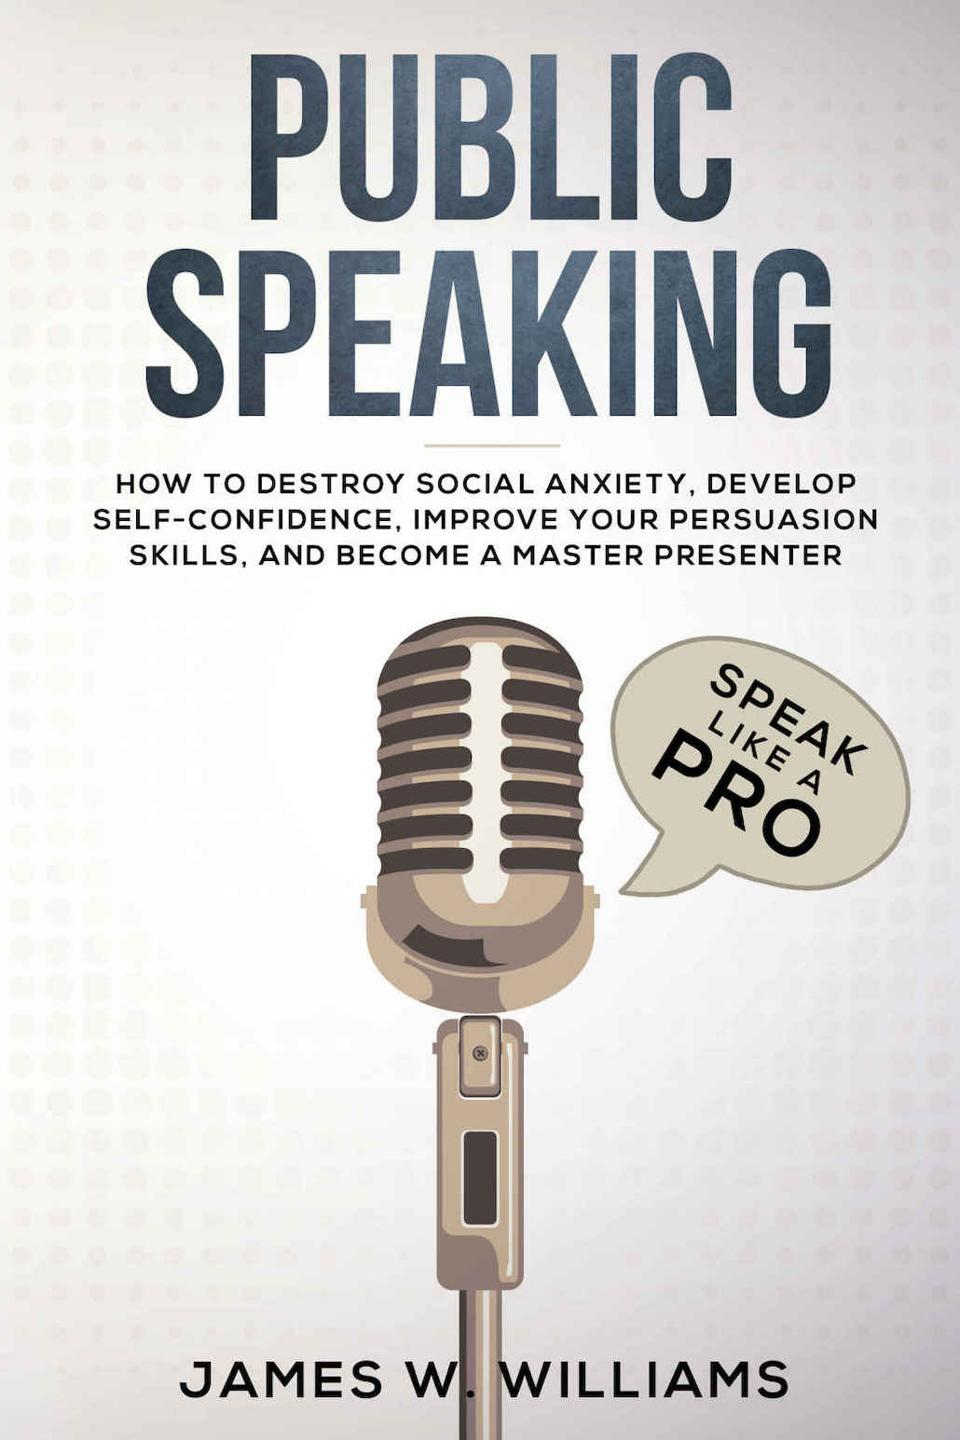 Public Speaking: How to Destroy Social Anxiety, Develop Self-Confidence, Improve Your Persuasion Skills, and Become a Master Presenter by James W. Williams